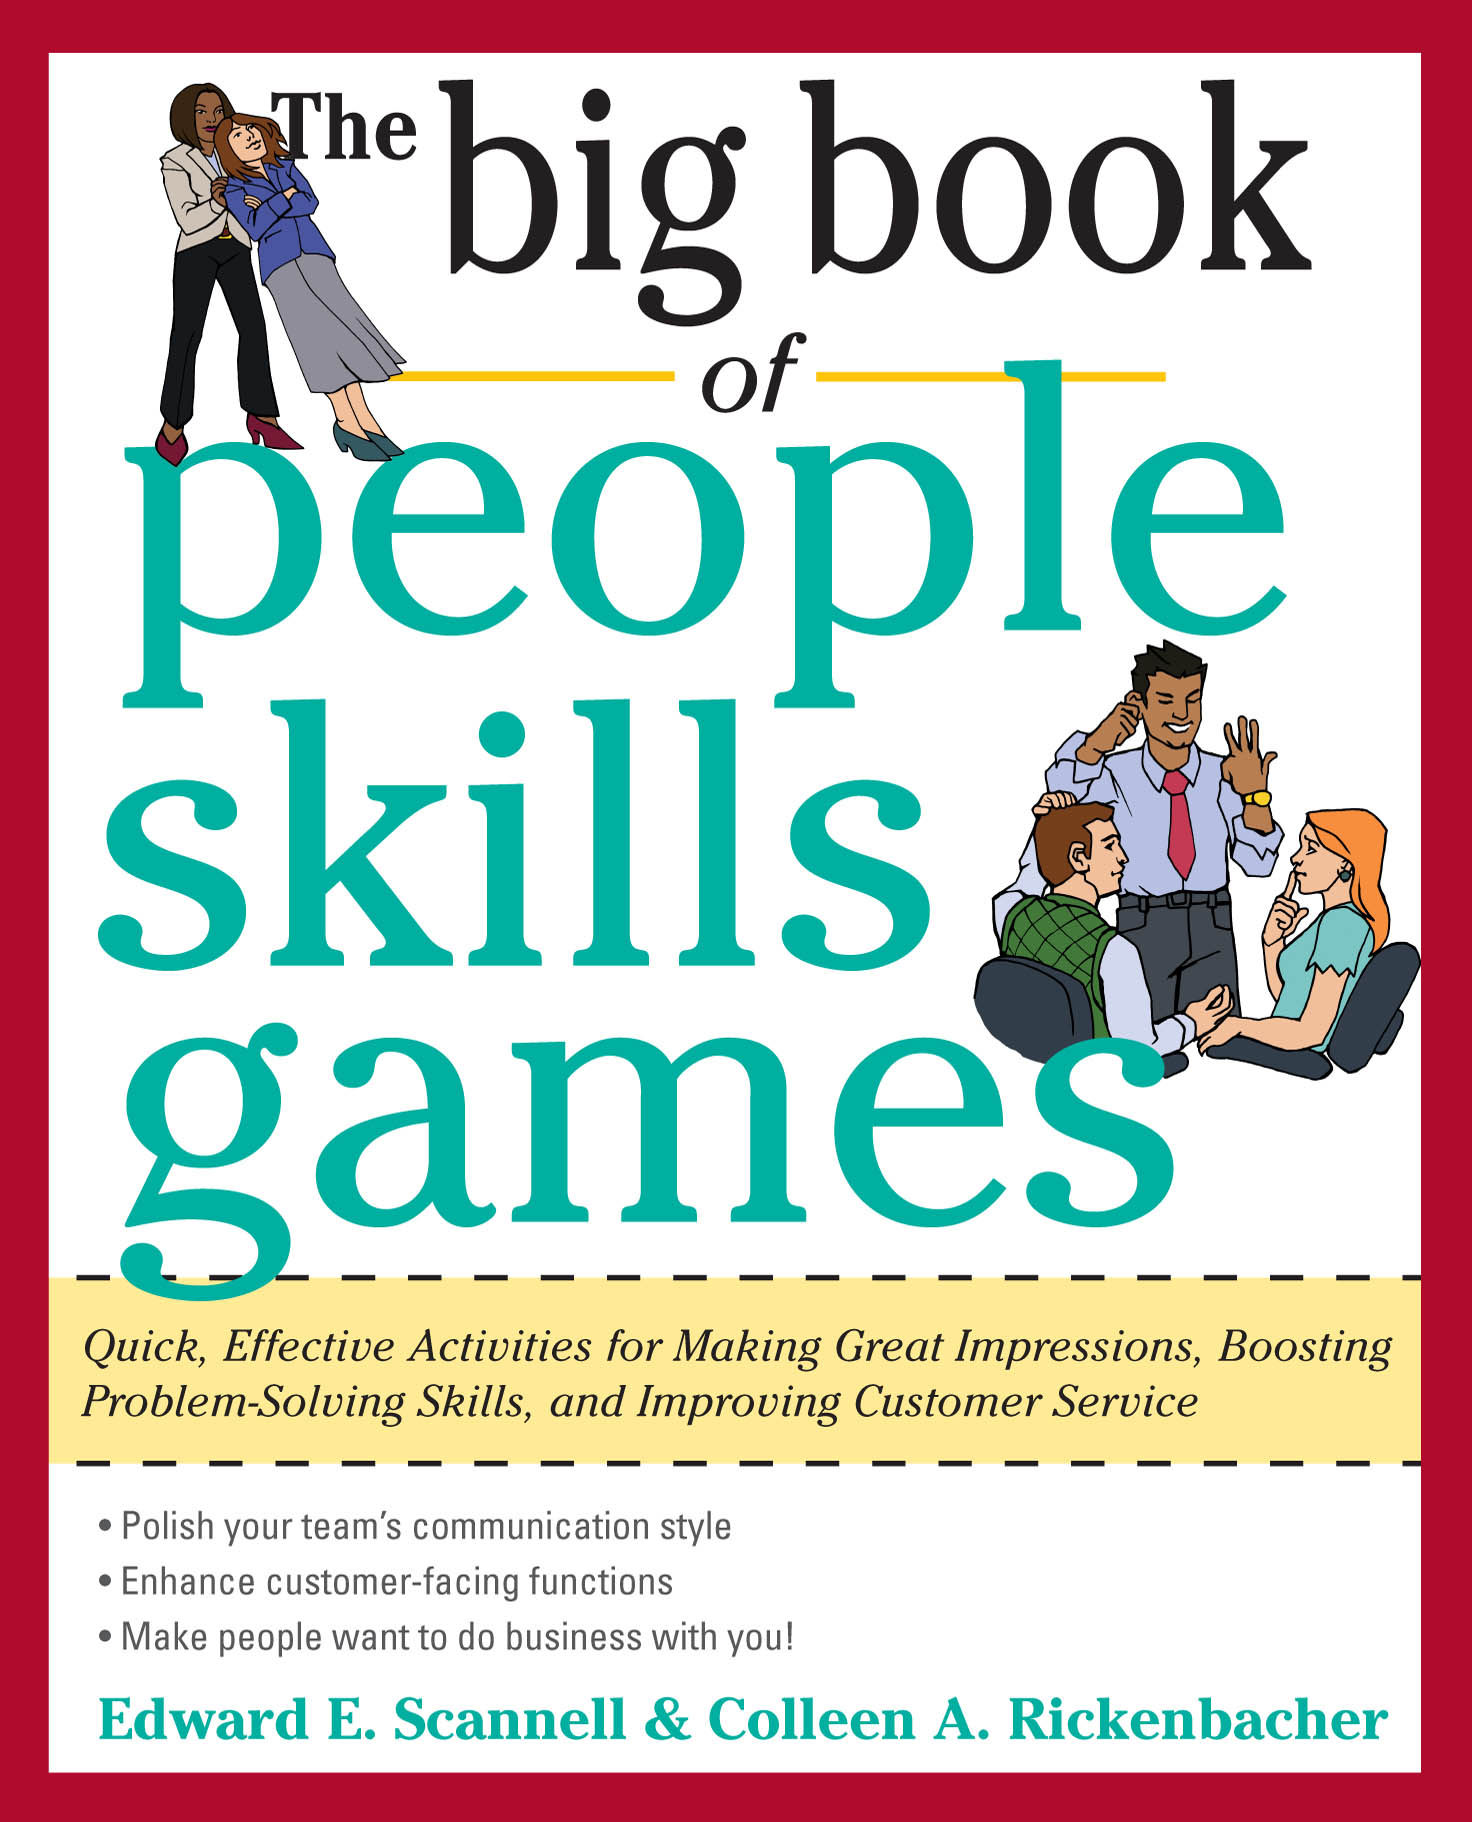 Download Ebook The Big Book of People Skills Games: Quick, Effective Activities for Making Great Impressions, Boosting Problem-Solving Skills and Improving Customer Service by Edward E. Scannell Pdf